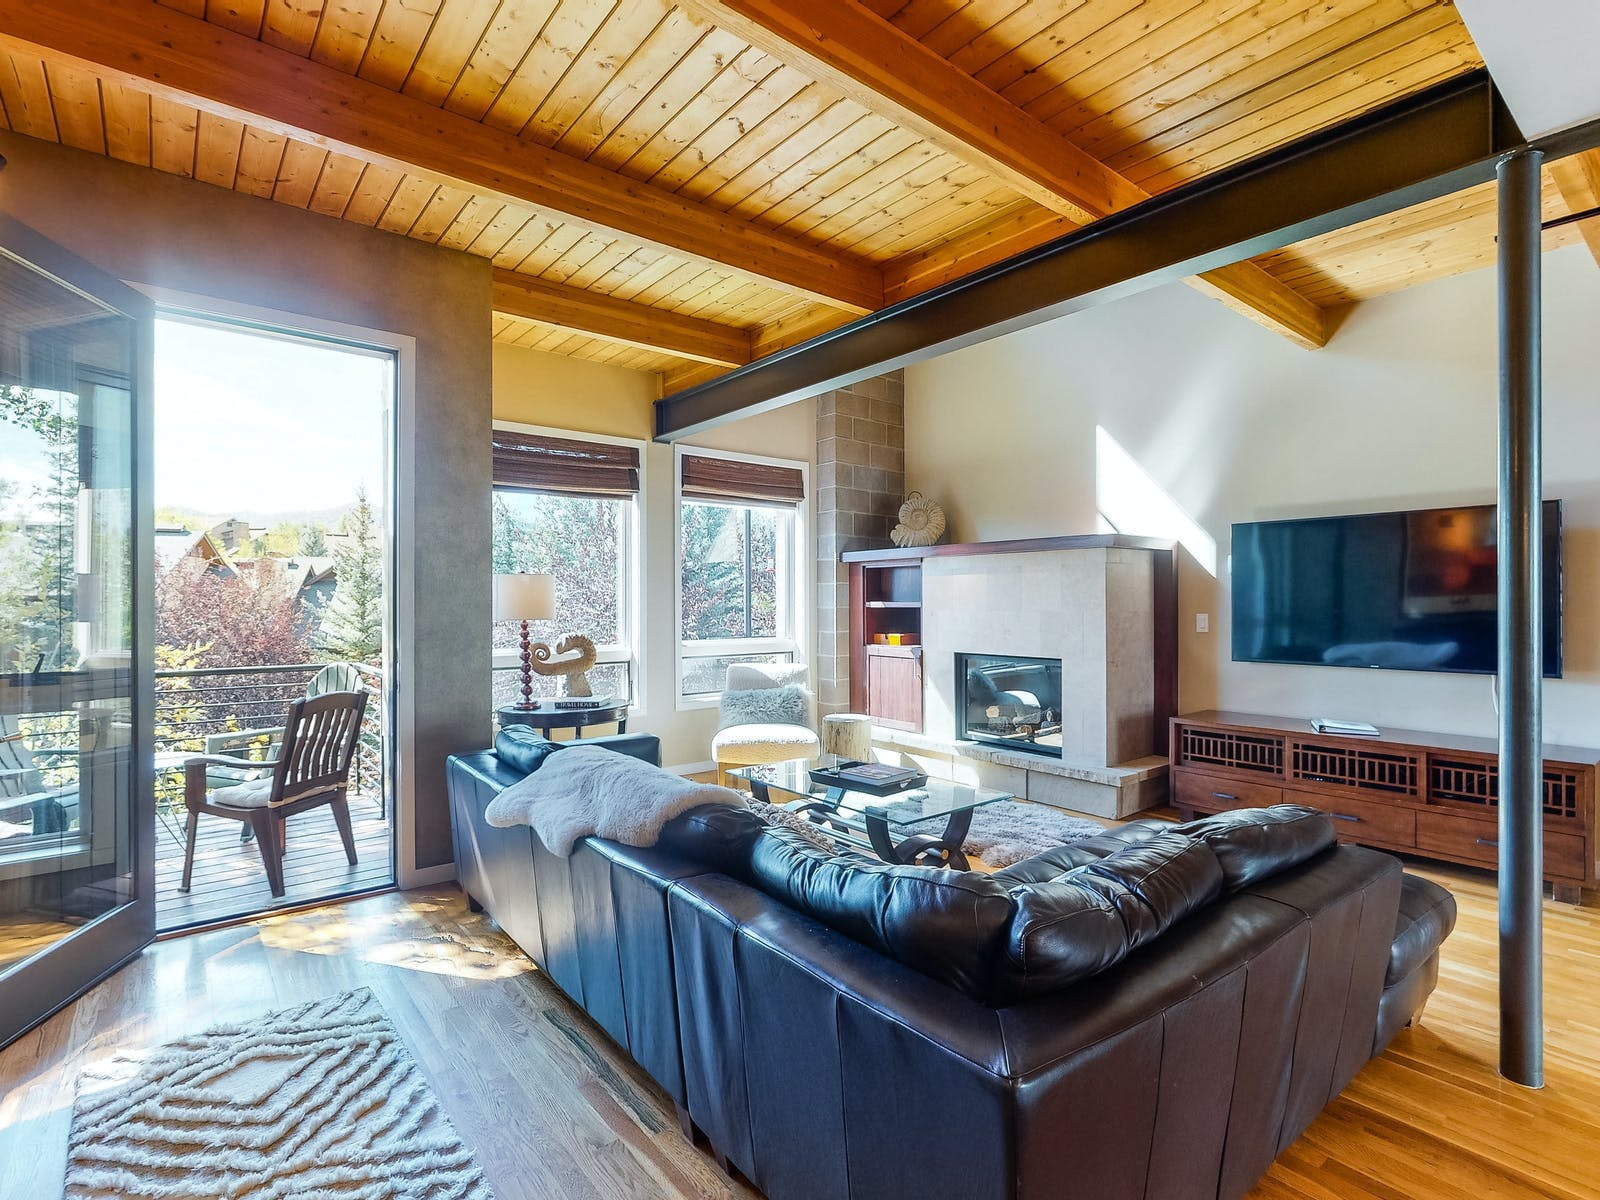 leather couch and wood paneling of steamboat springs, co vacation rental